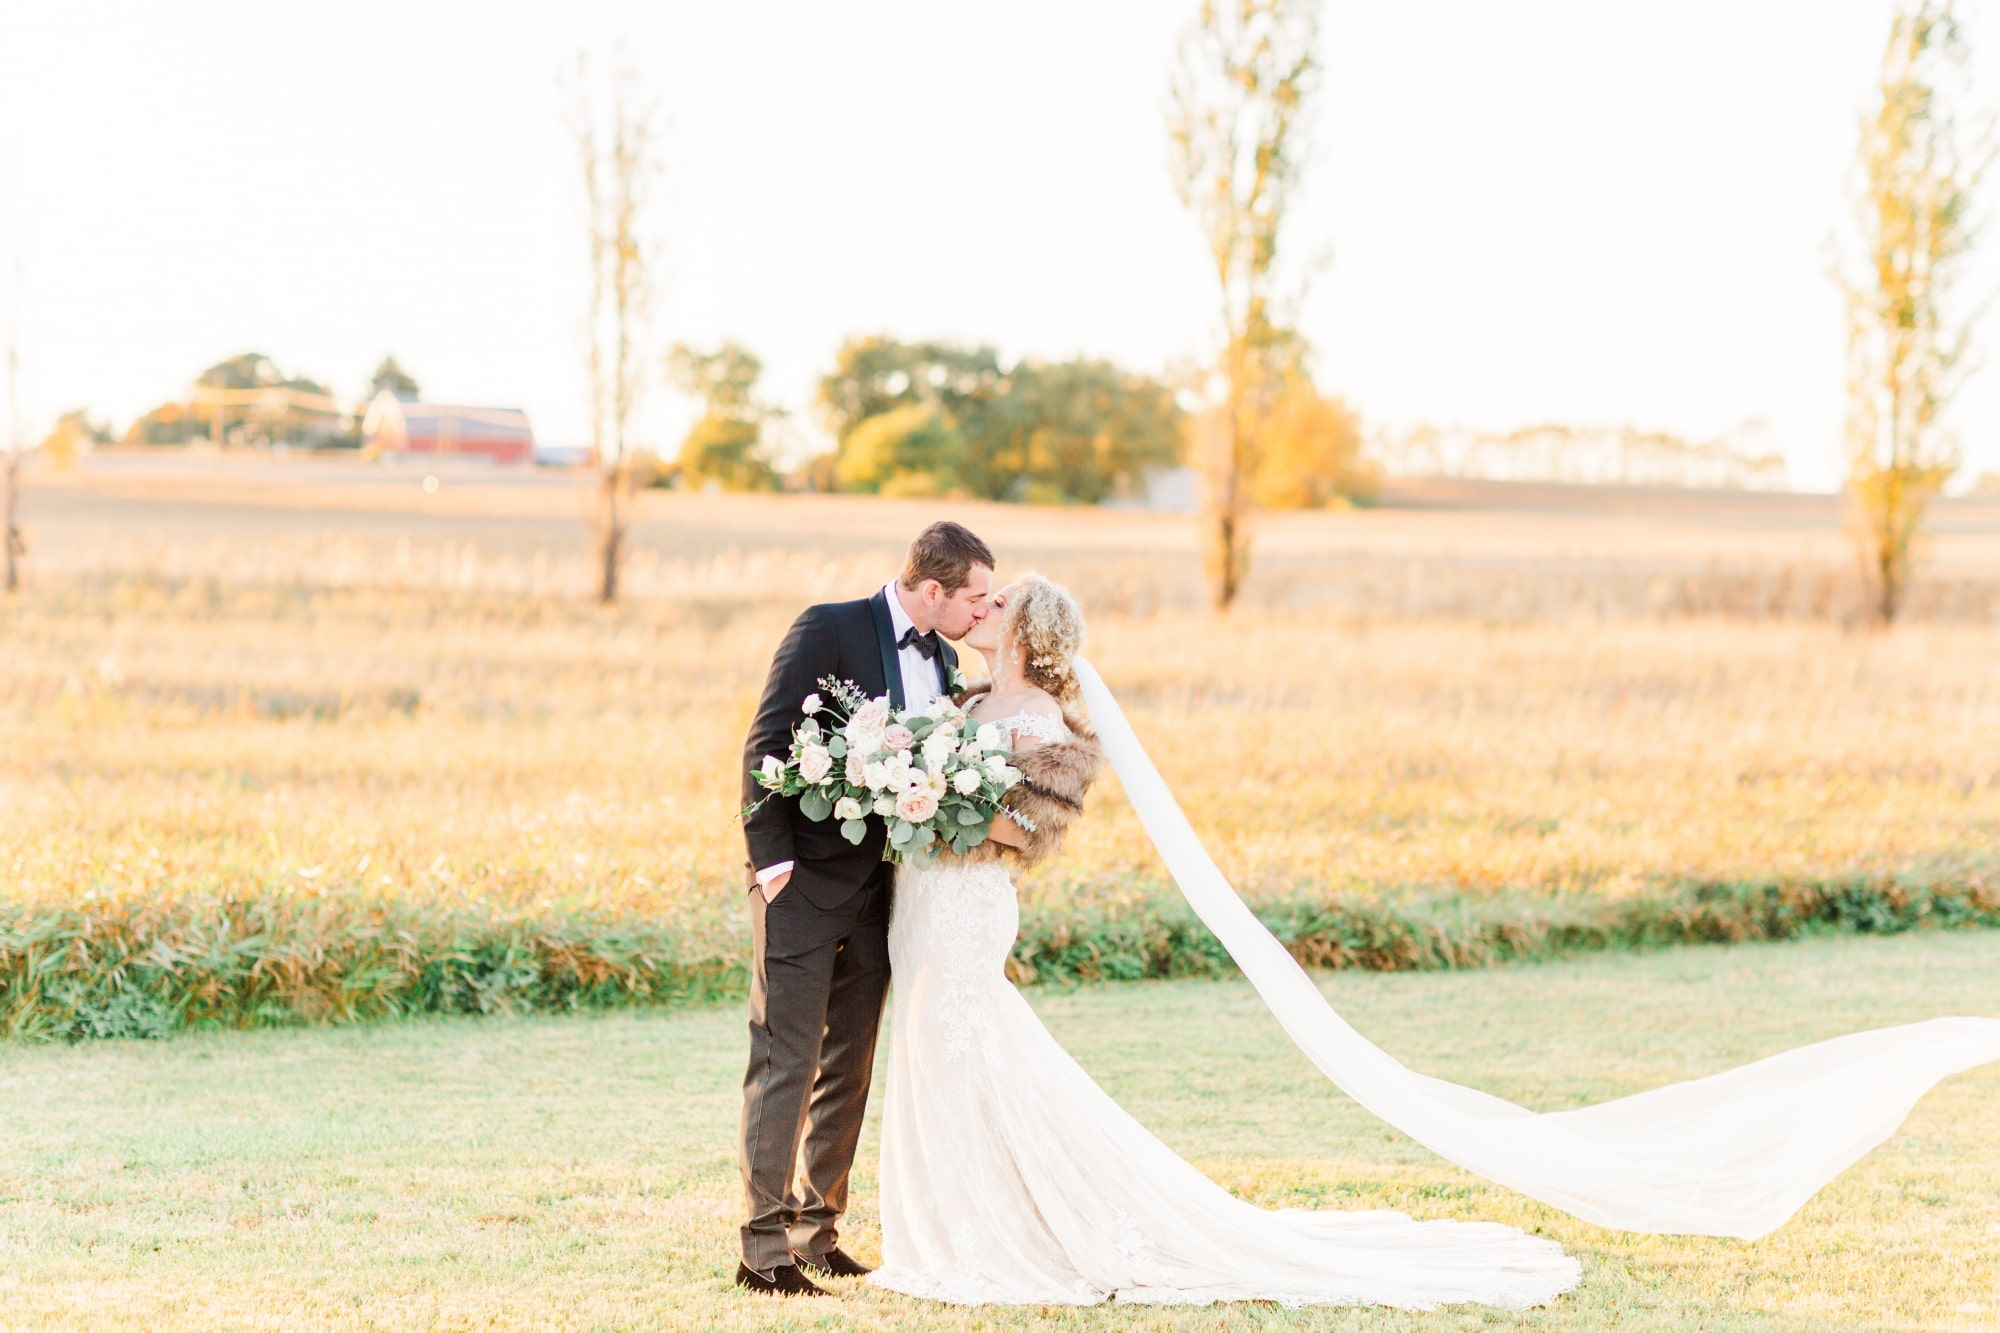 bride veil in wind as wedded couple kiss in fall farm white barn wedding